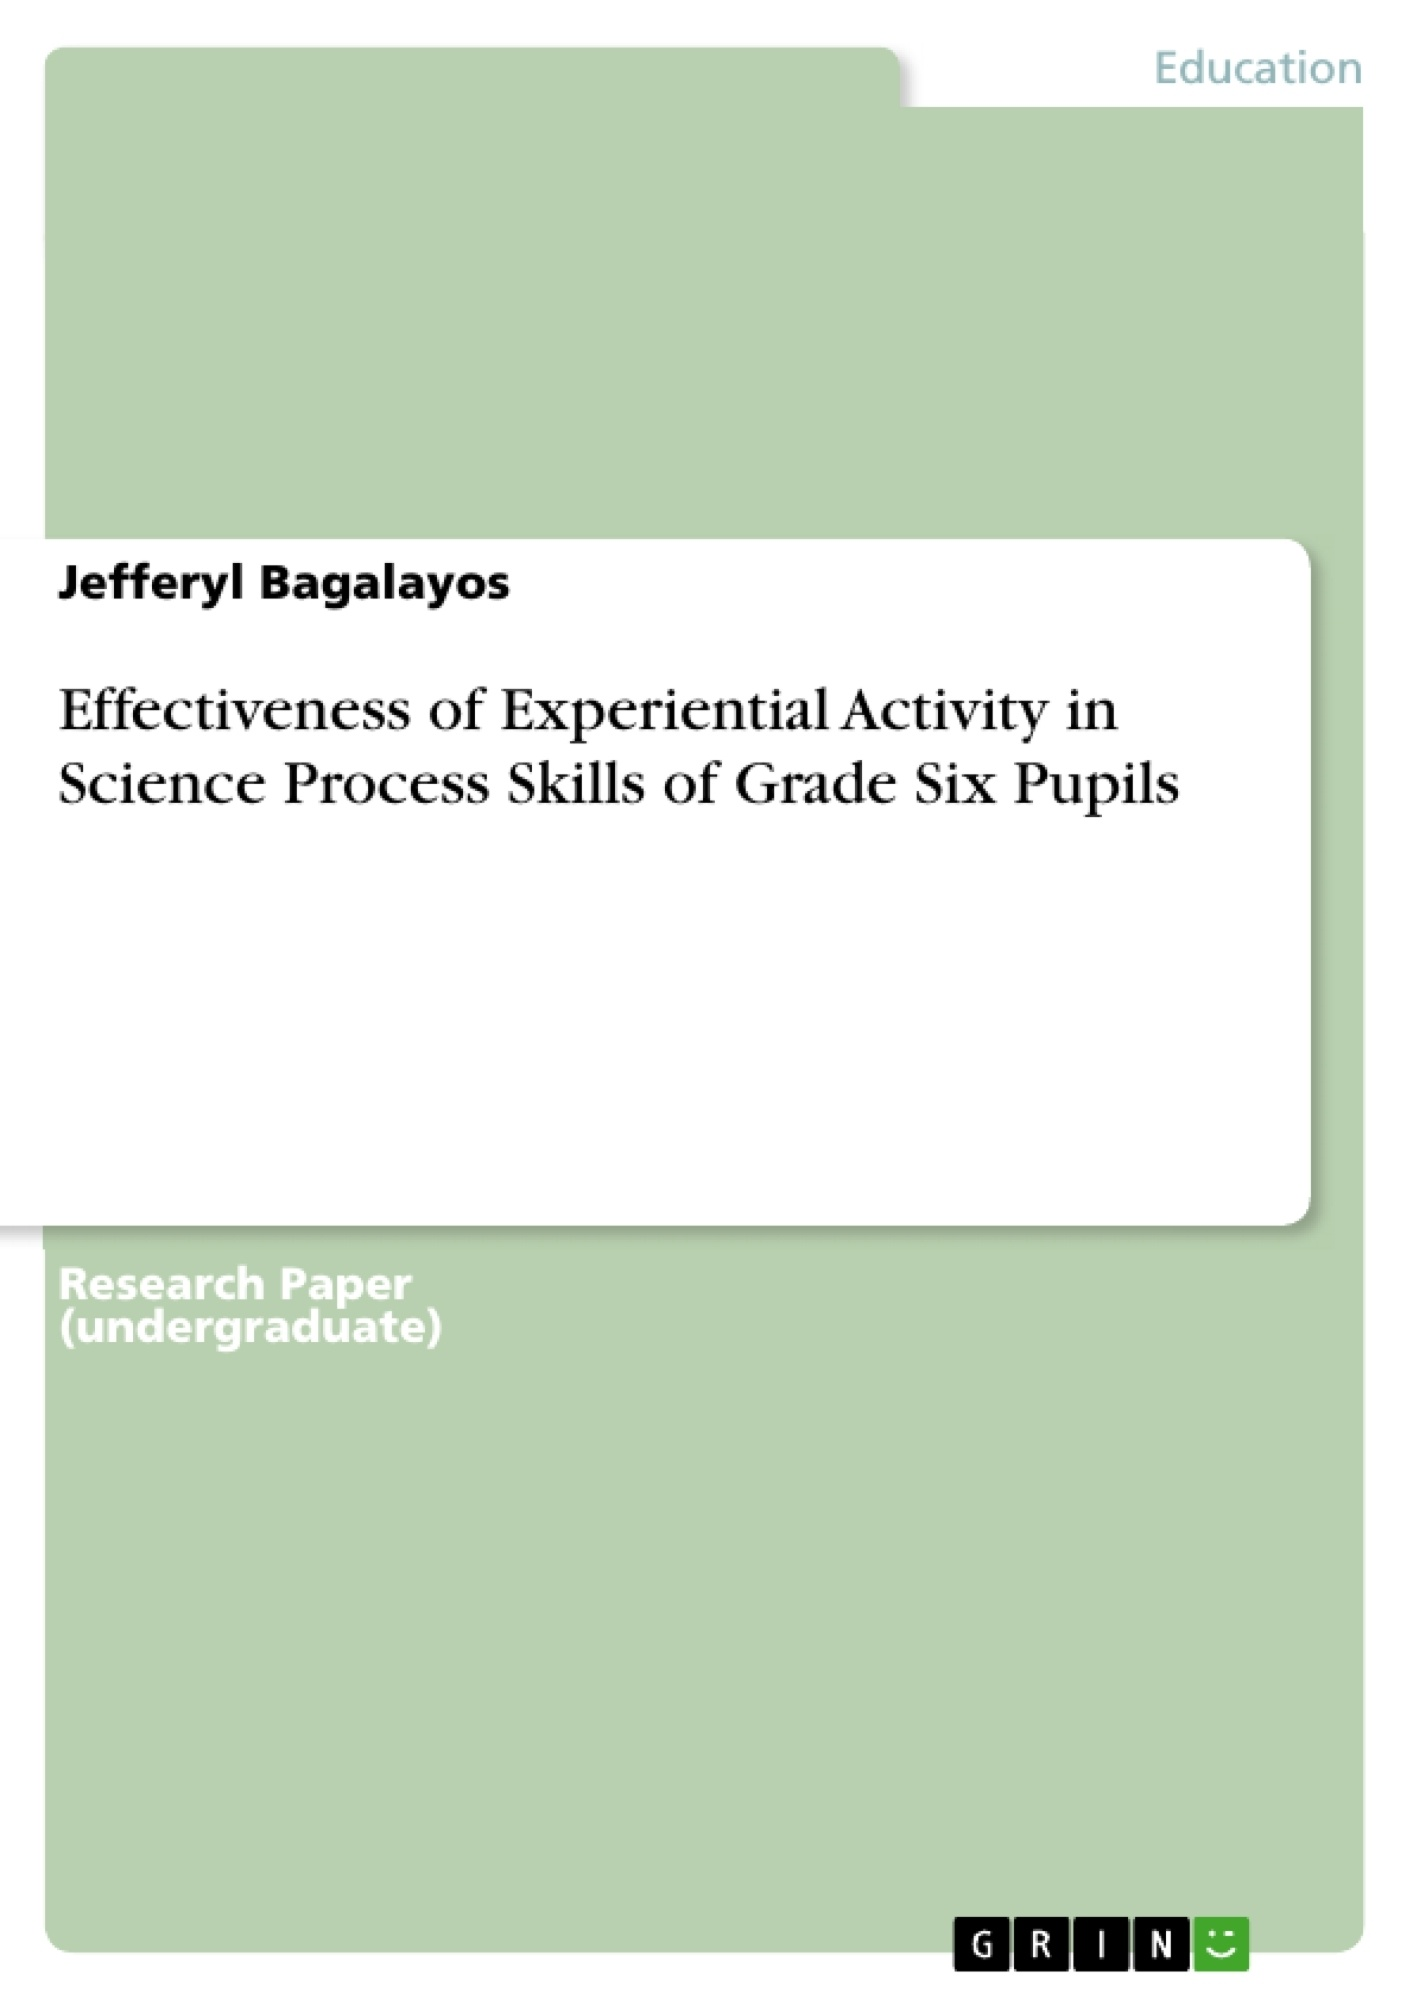 Title: Effectiveness of Experiential Activity in Science Process Skills of Grade Six Pupils